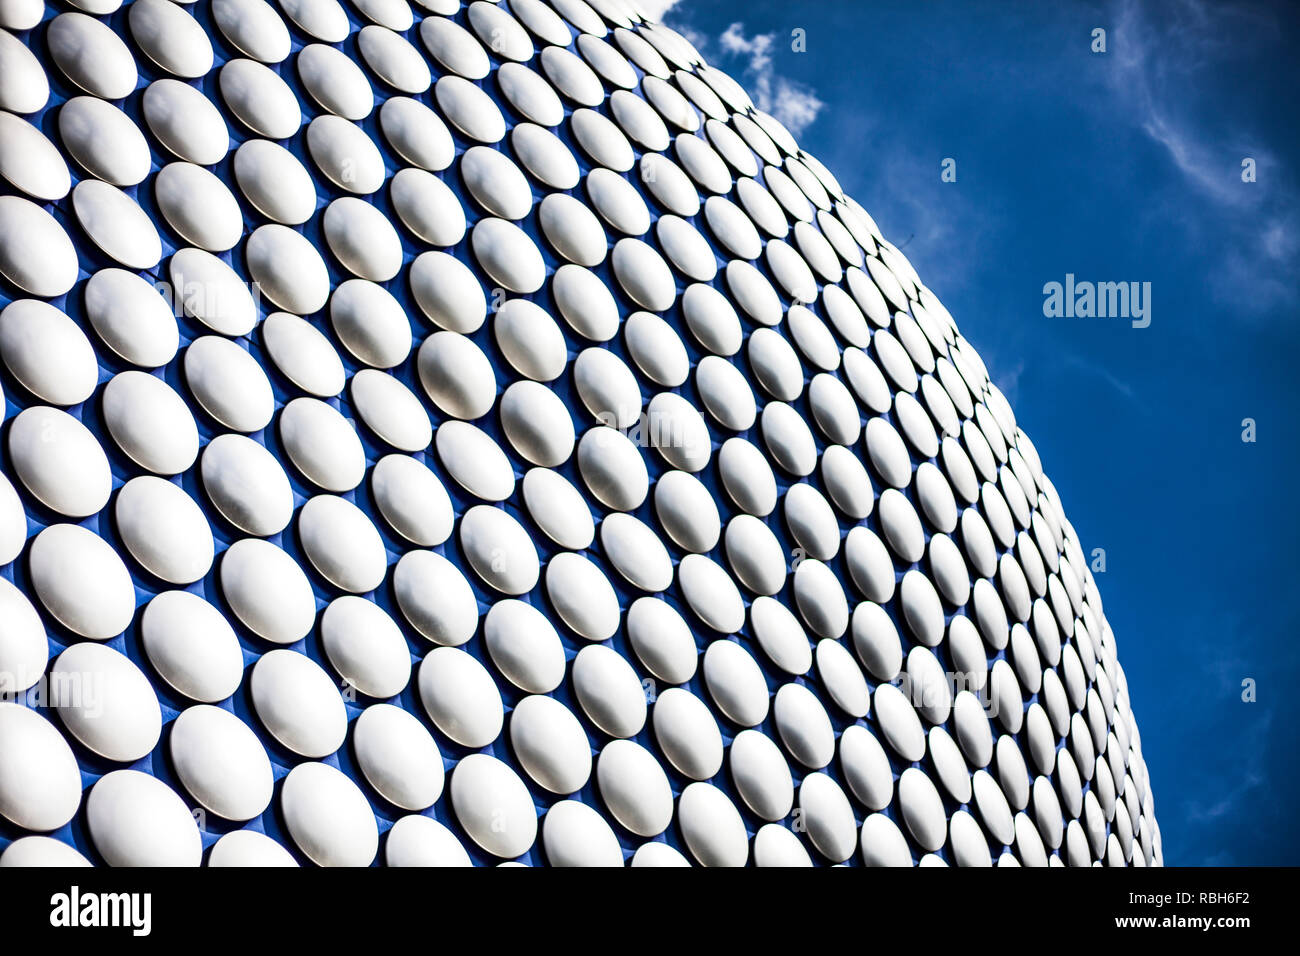 Futuristic modern building exterior cladding at the shopping mall in the centre of Birmingham, England. Blue pins of patern shown in the building. Mod - Stock Image